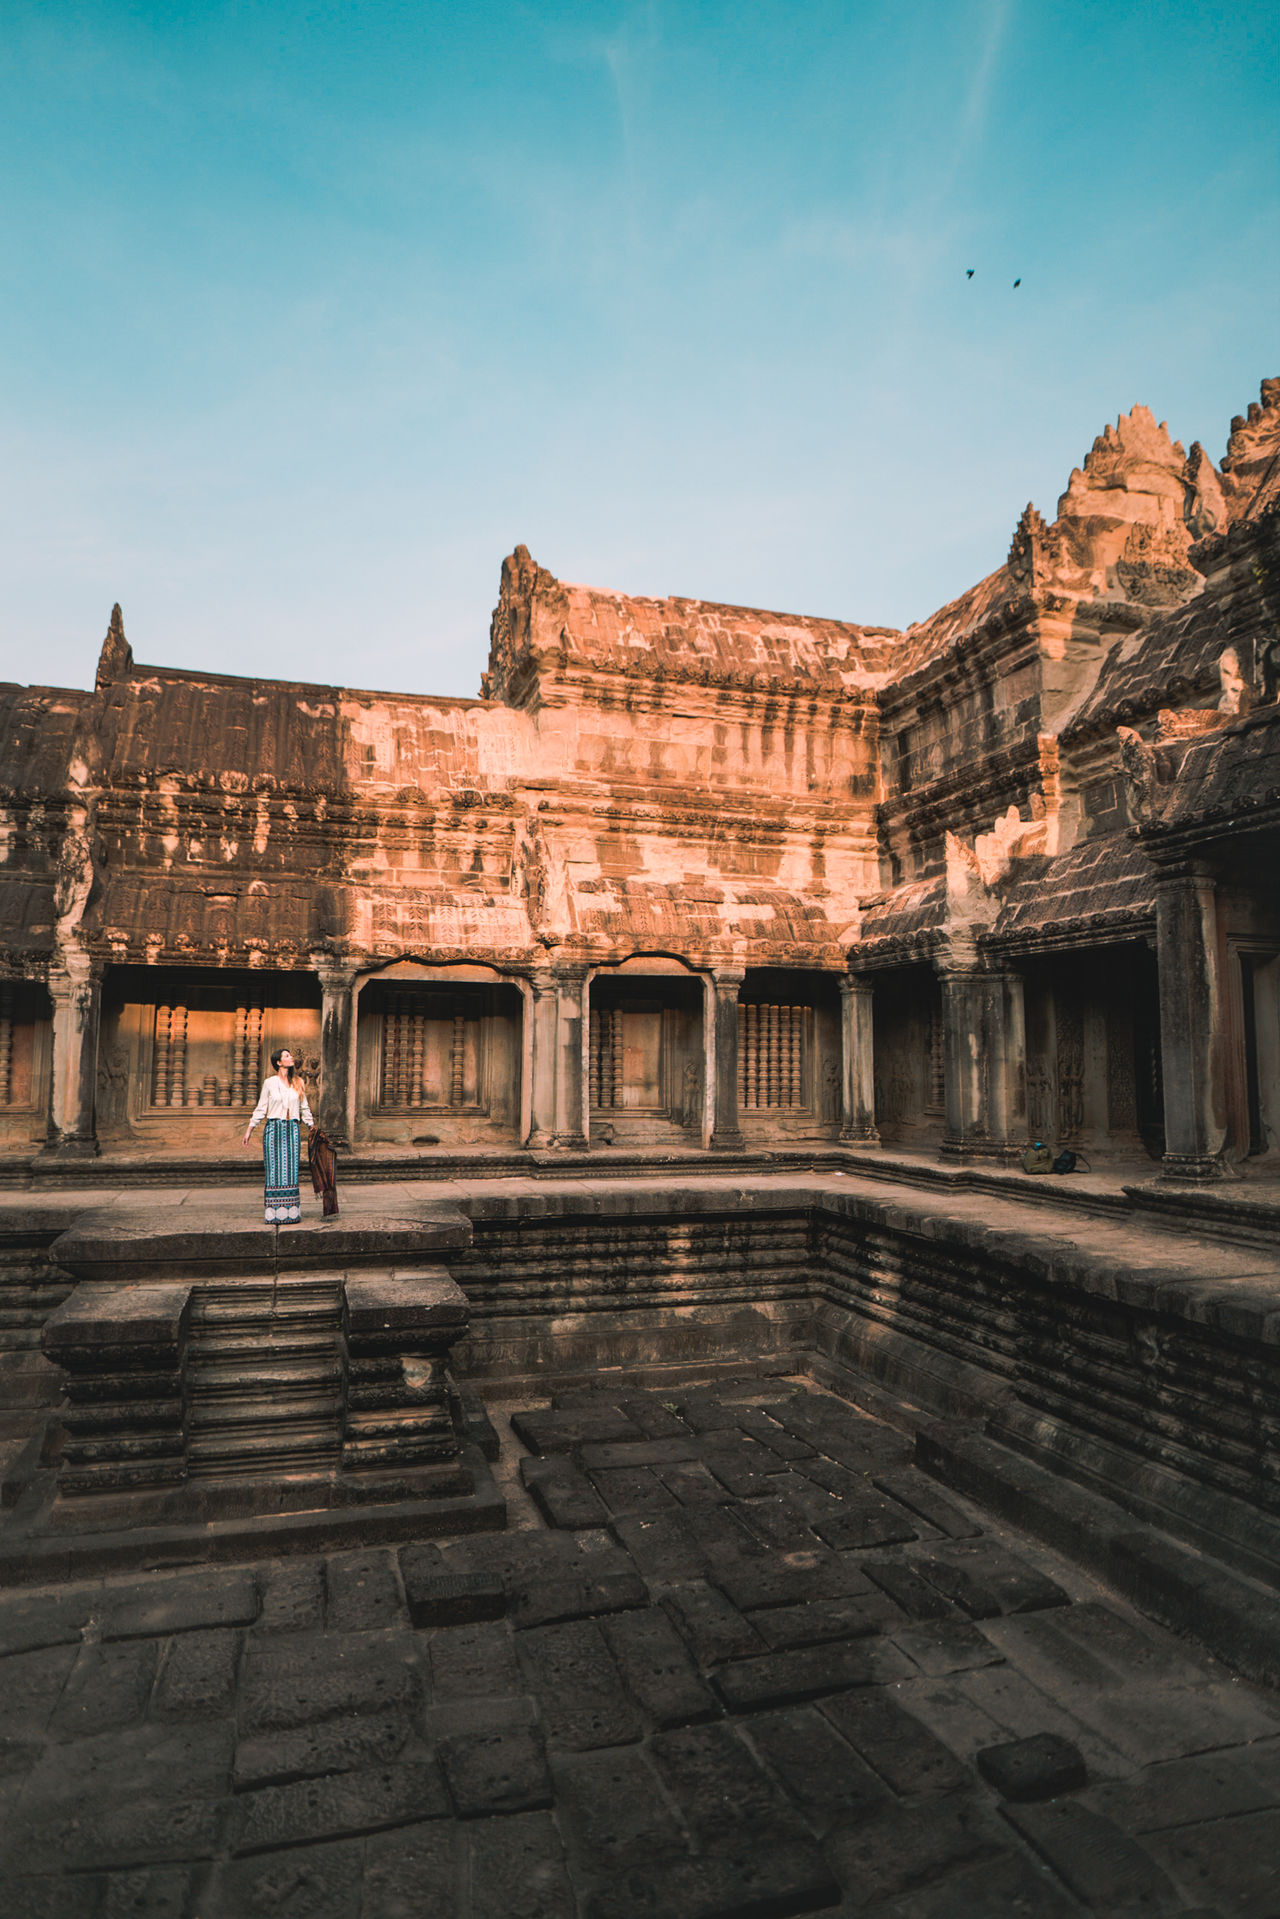 Revel History Travel Destinations Architecture Ancient Civilization Outdoors Day Adult Wonder Of The World Temple Tourism Cambodia ASIA Travel Photography Travel Angkor Wat Showcase May Culture Built Structure One Woman Only Full Length Standing Architecture